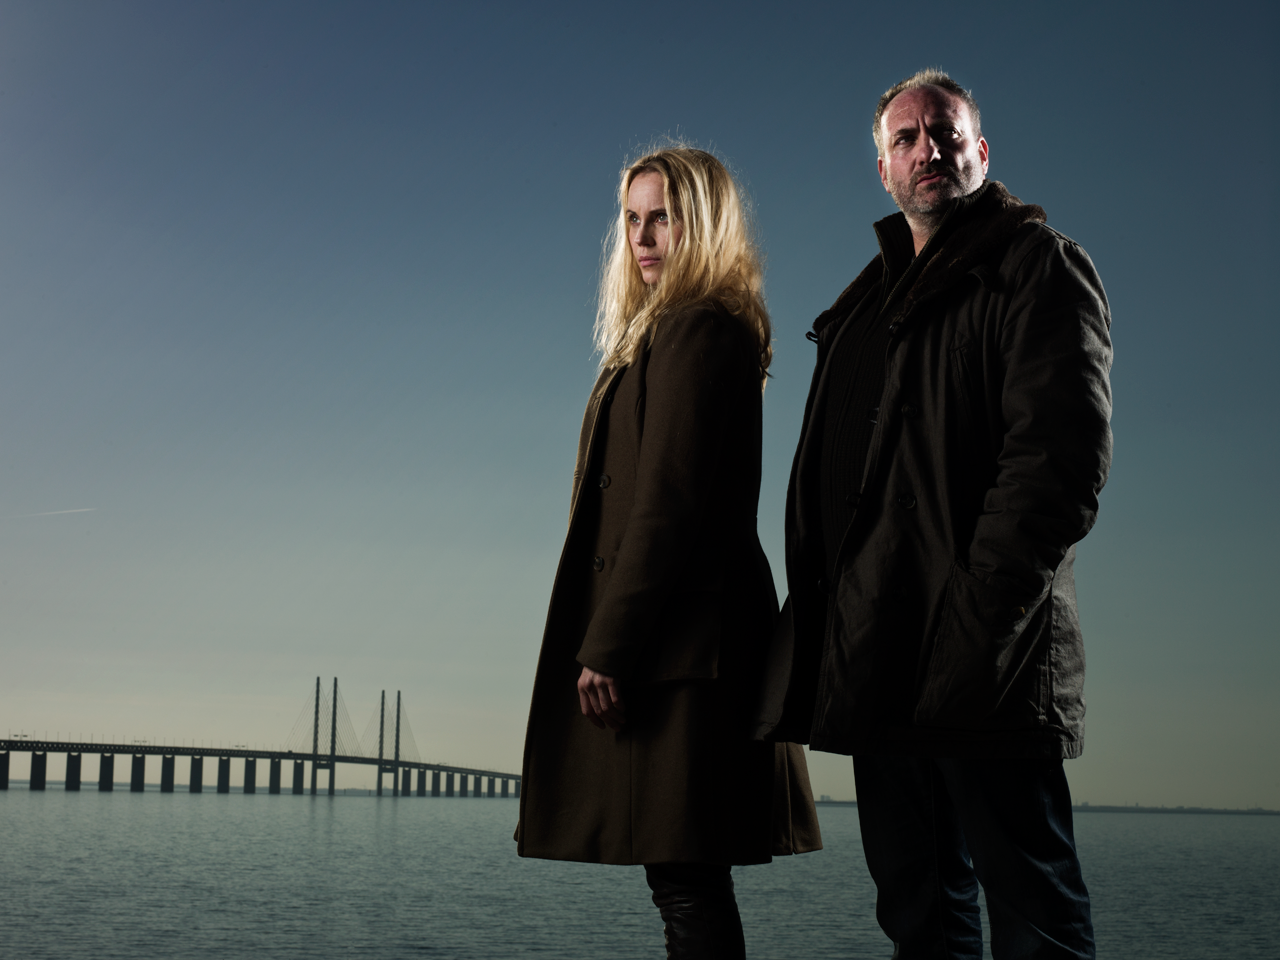 Scandinavian Noir TV series: Bron or Broen or The Bridge